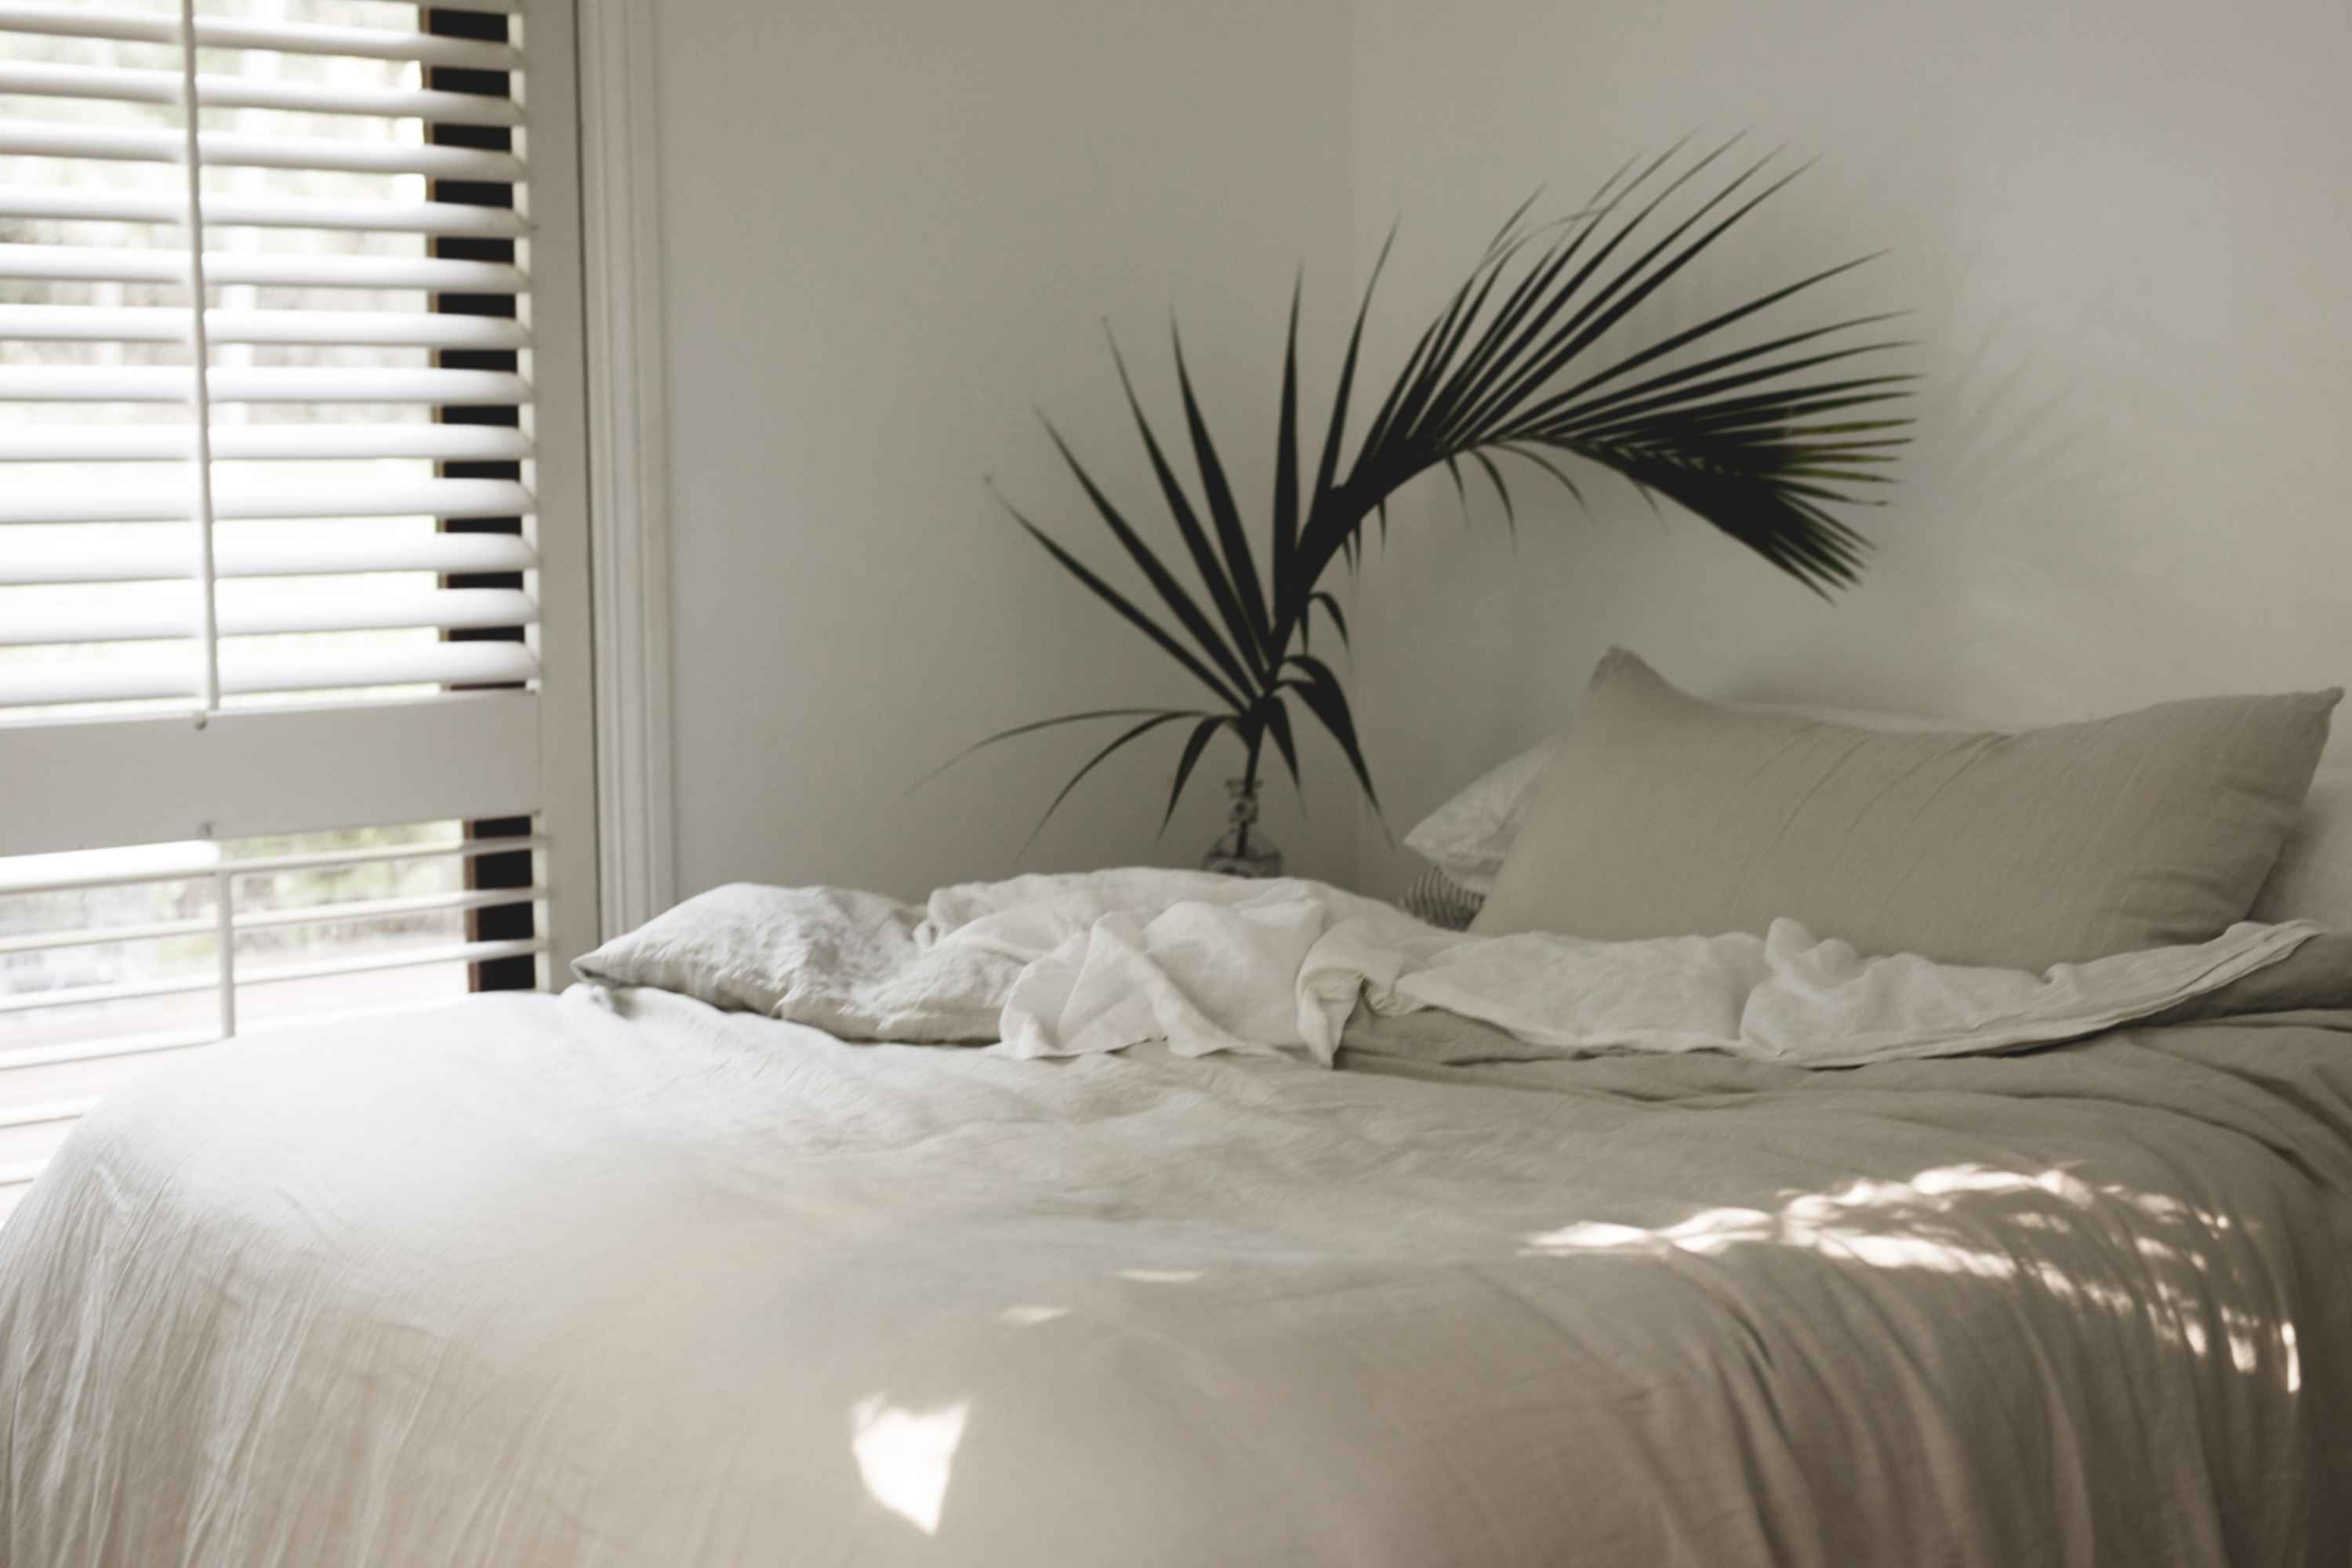 Chloë McCarthy for IN BED on Lord Howe Island.